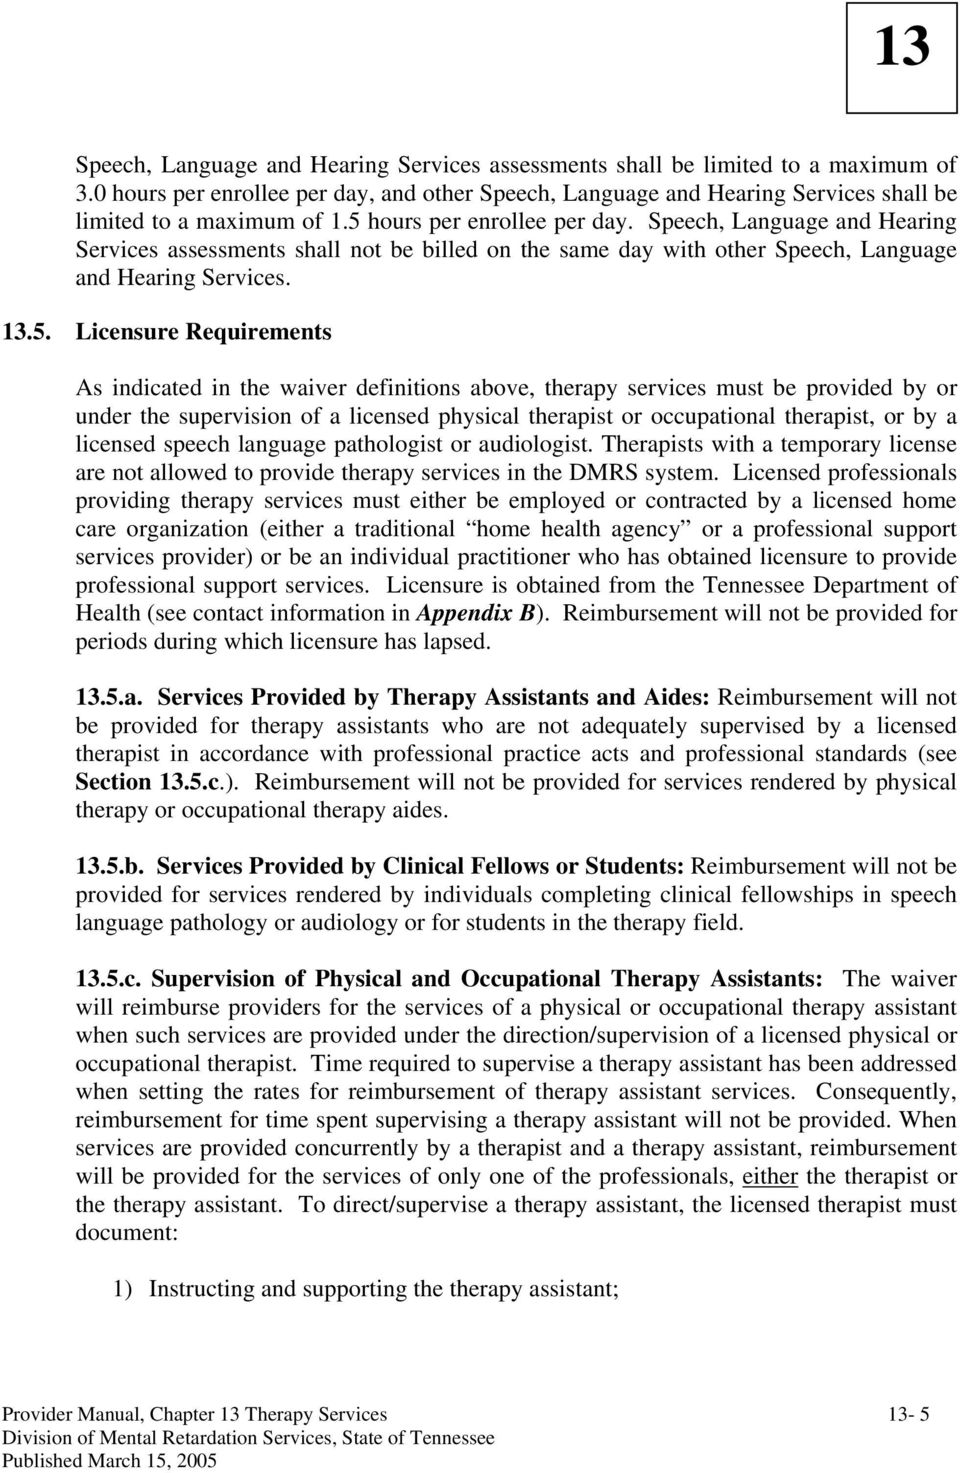 indicated in the waiver definitions above, therapy services must be provided by or under the supervision of a licensed physical therapist or occupational therapist, or by a licensed speech language